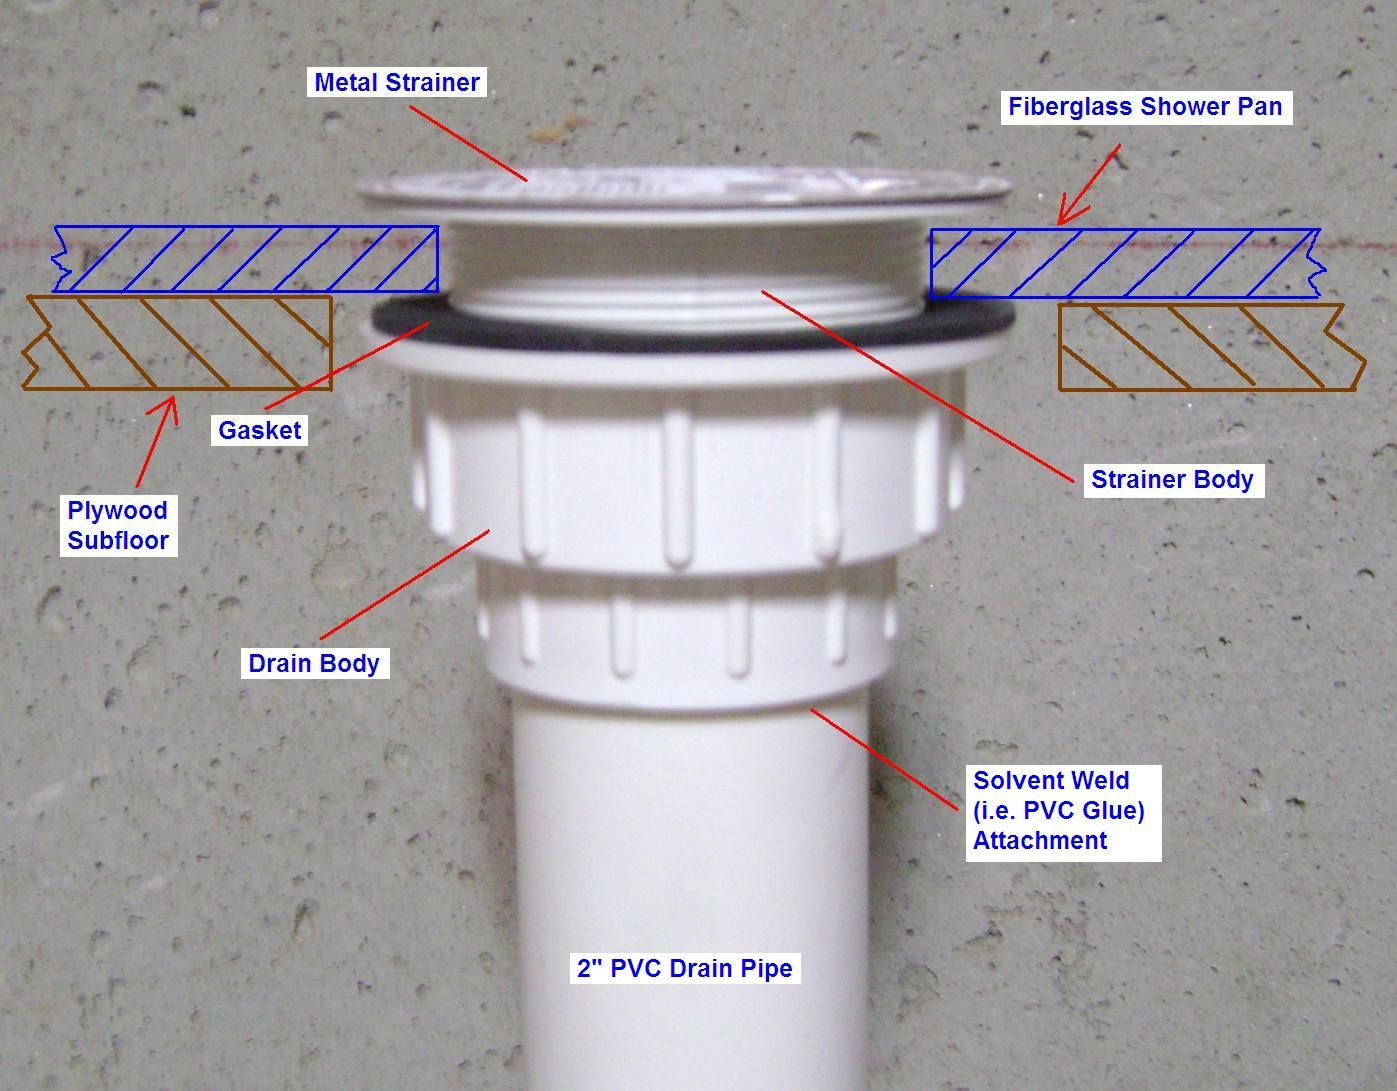 toilet flange diagram rb20det ecu wiring leaky shower drain repair installation